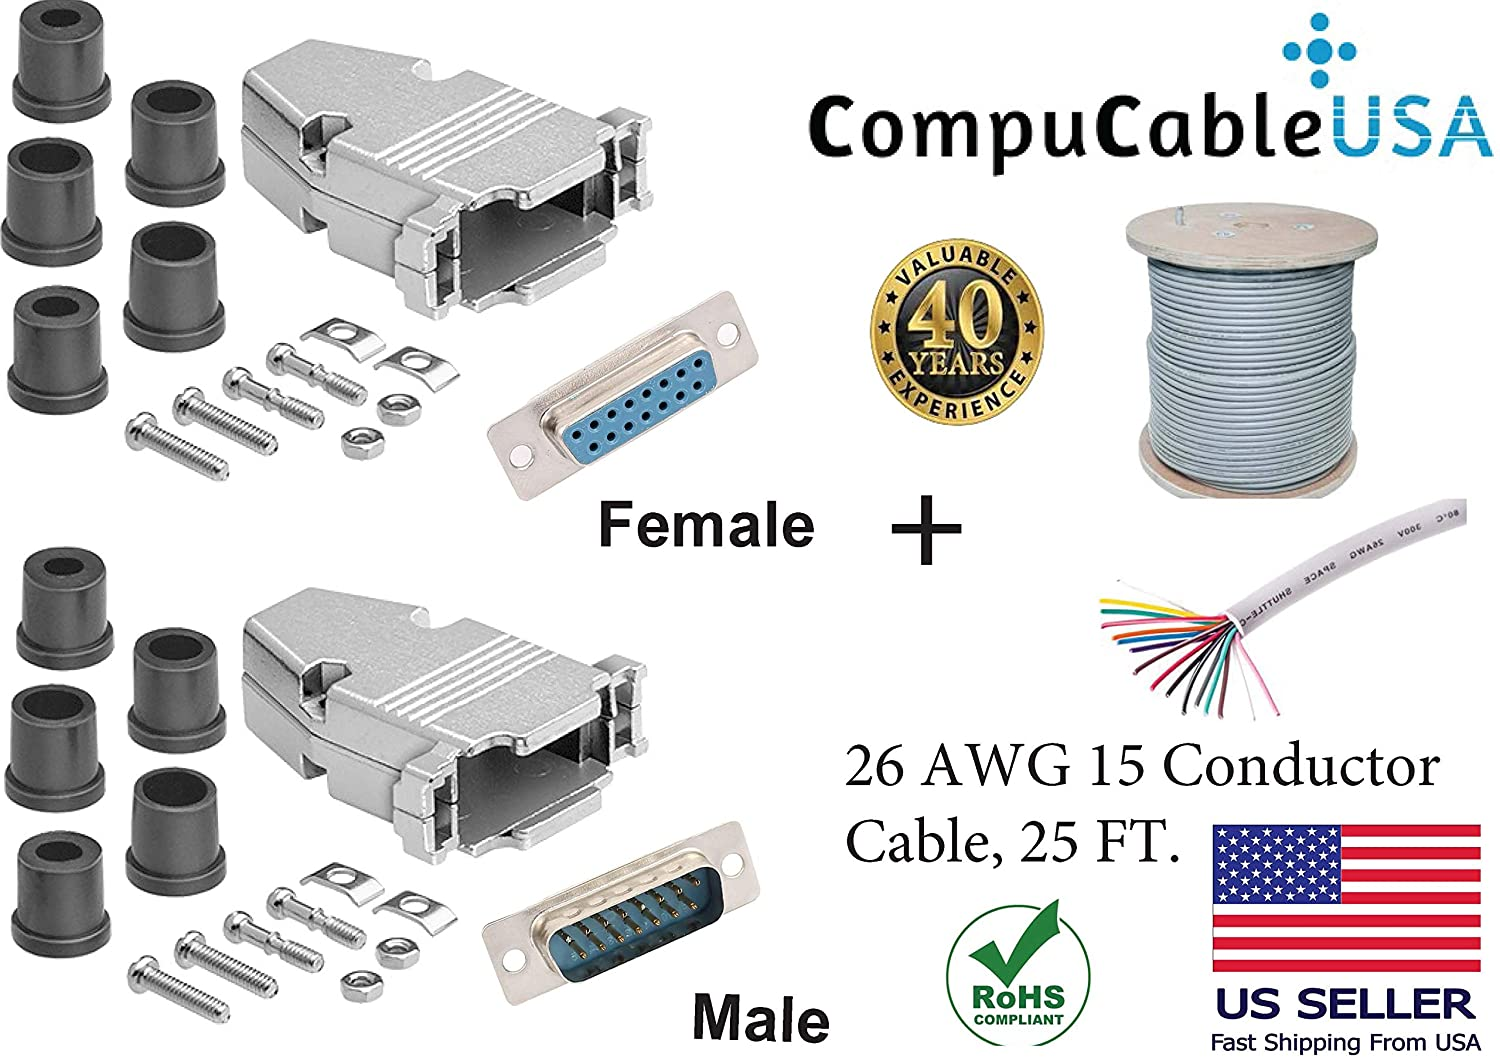 CompuCablePlusUSA.com Best Set DB15 Male/Female Solder Type Connector Kits w/Metal Hood+ D-Sub Male/Female Pins+Strain Relief Grommet+26 AWG 15-Conductor Shielded Cable 25 Complete Bundle Set